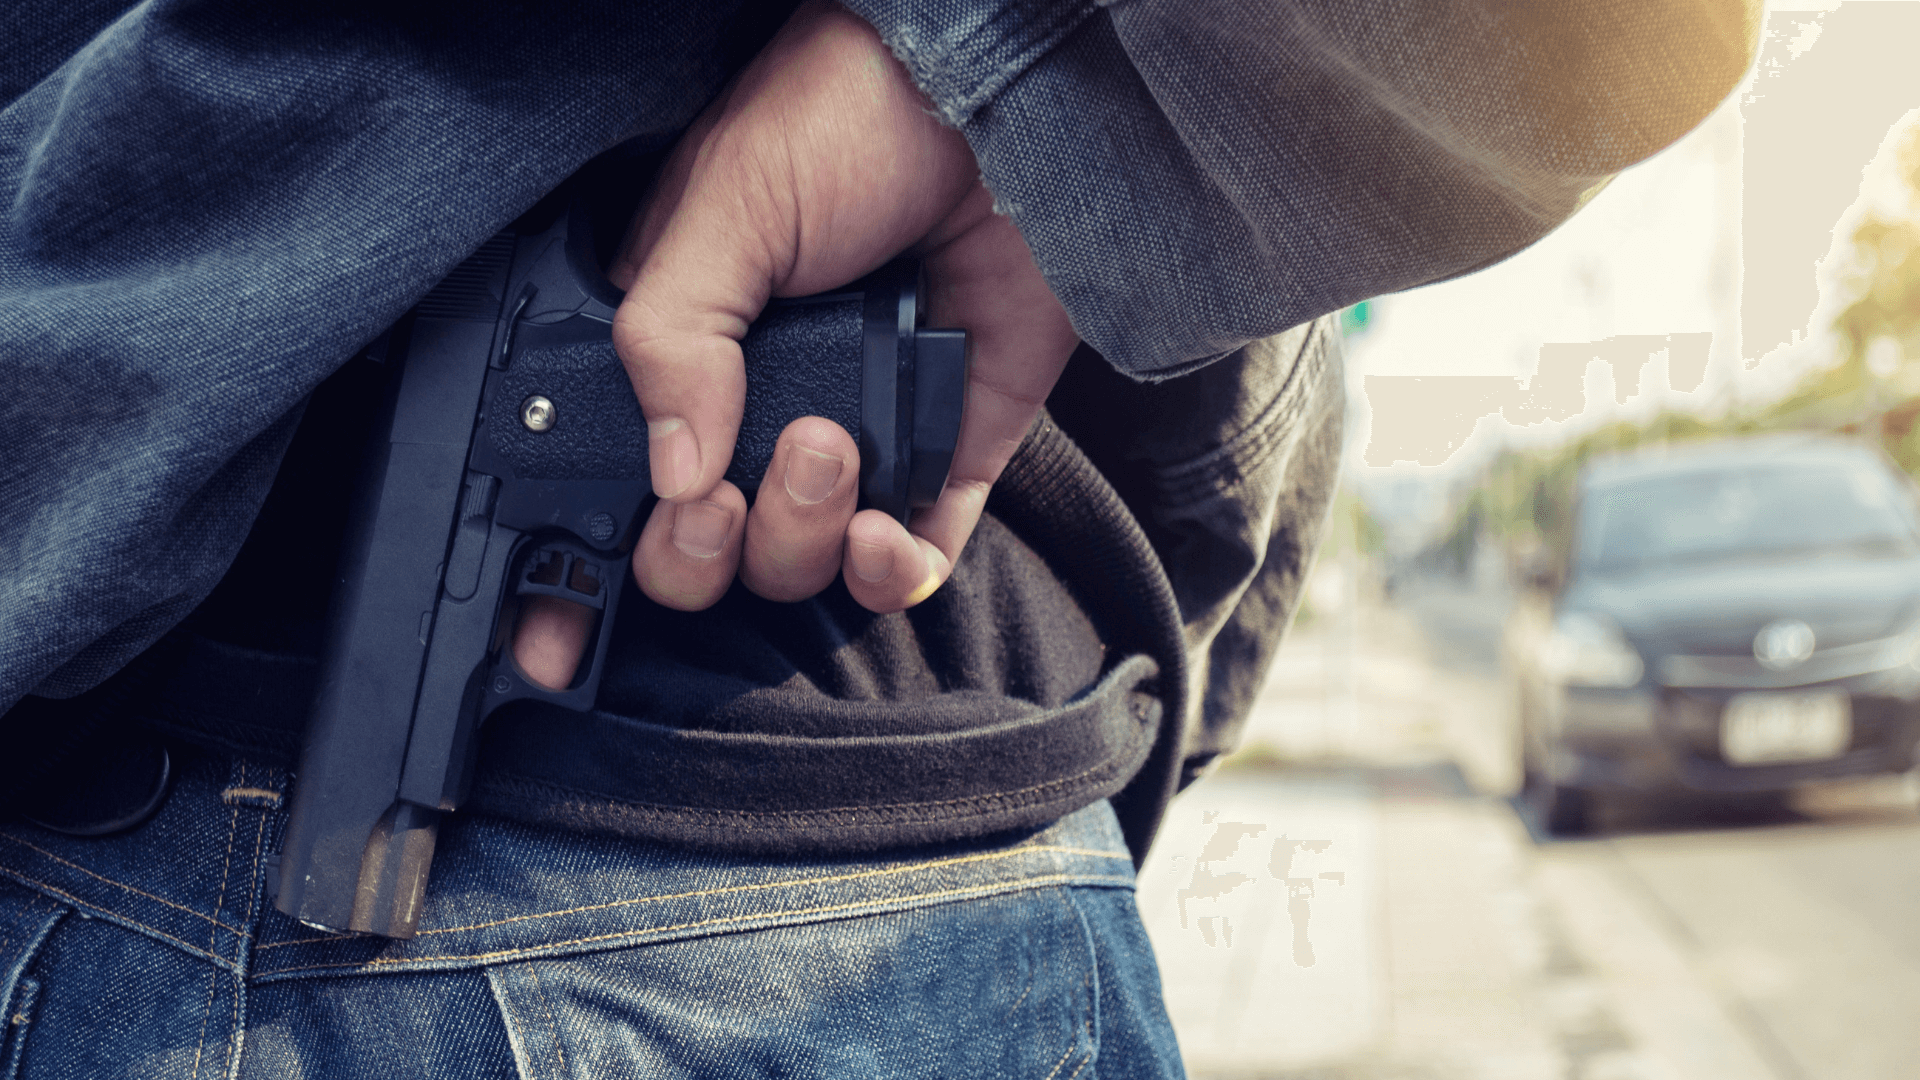 Protect Your Parks and People by Preparing for an Active Shooter